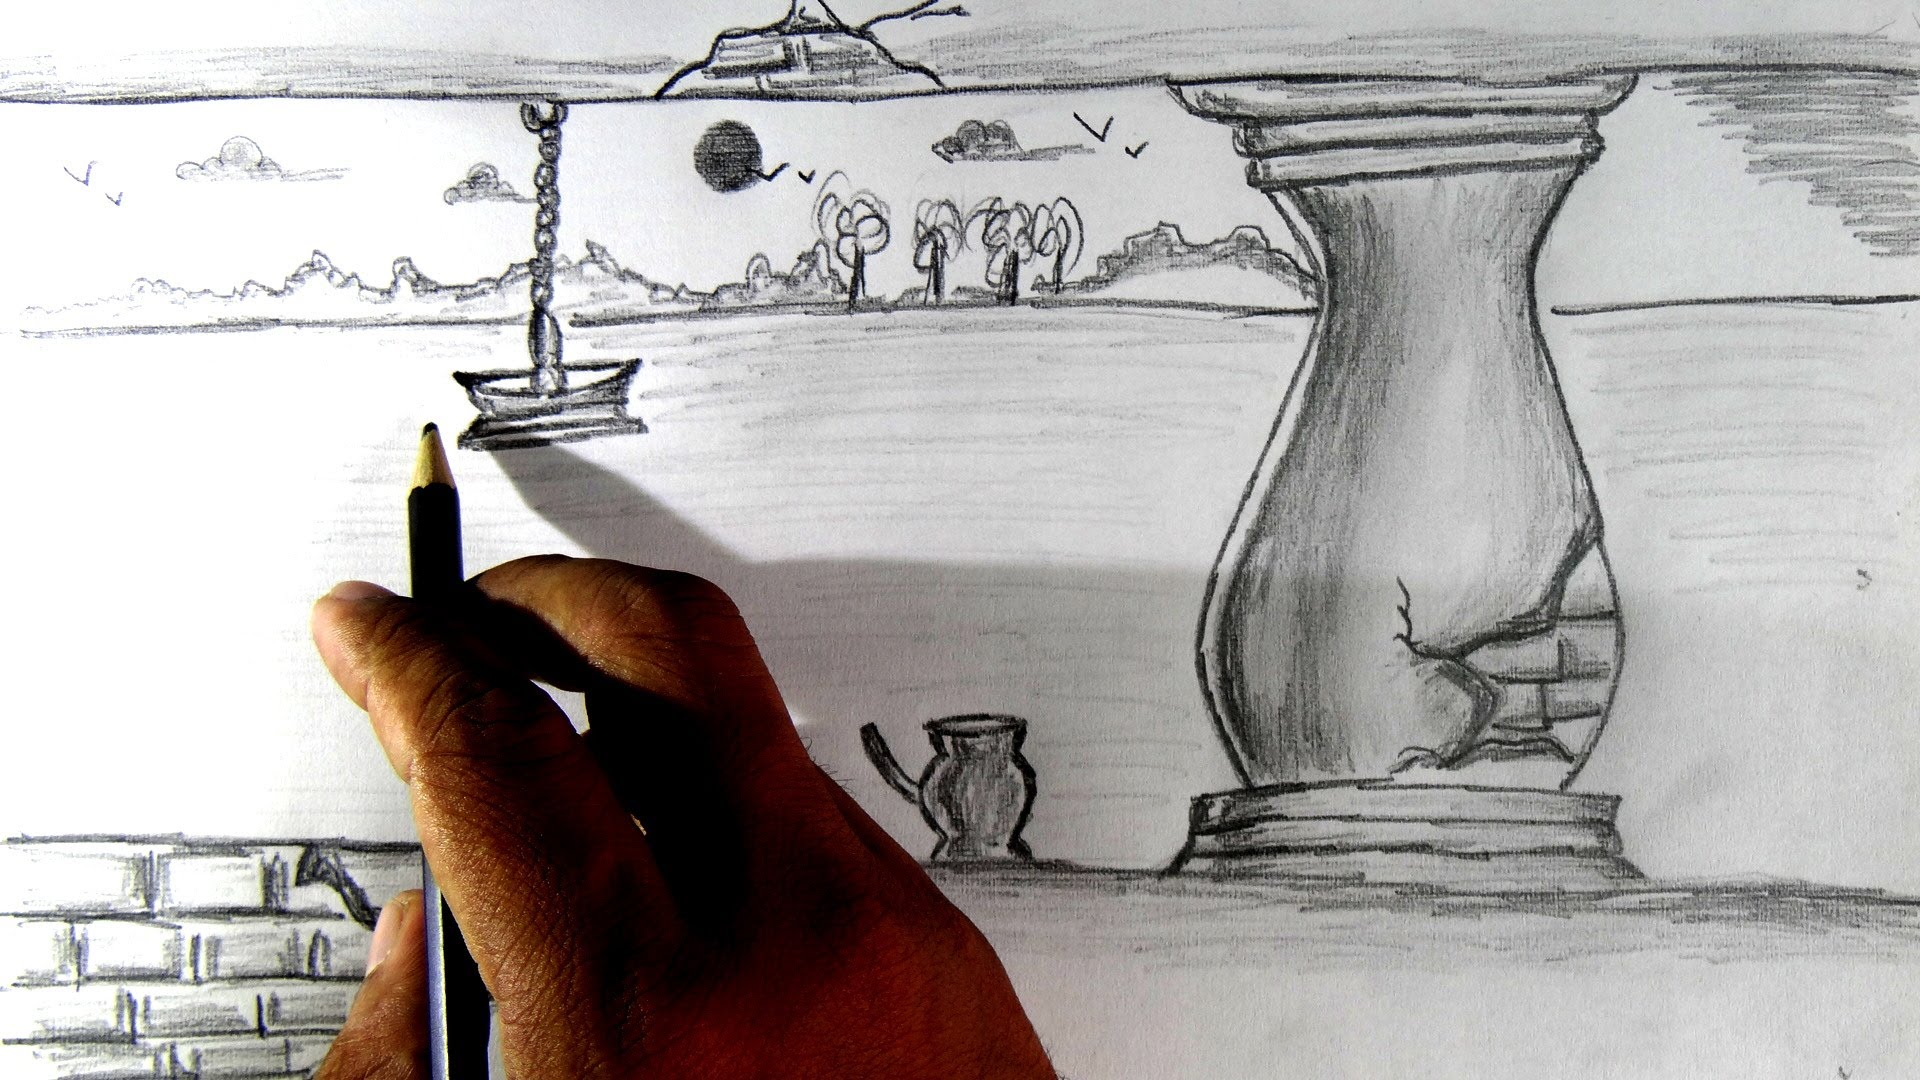 Shading Drawing Of Scenery At Getdrawings Com Free For Personal